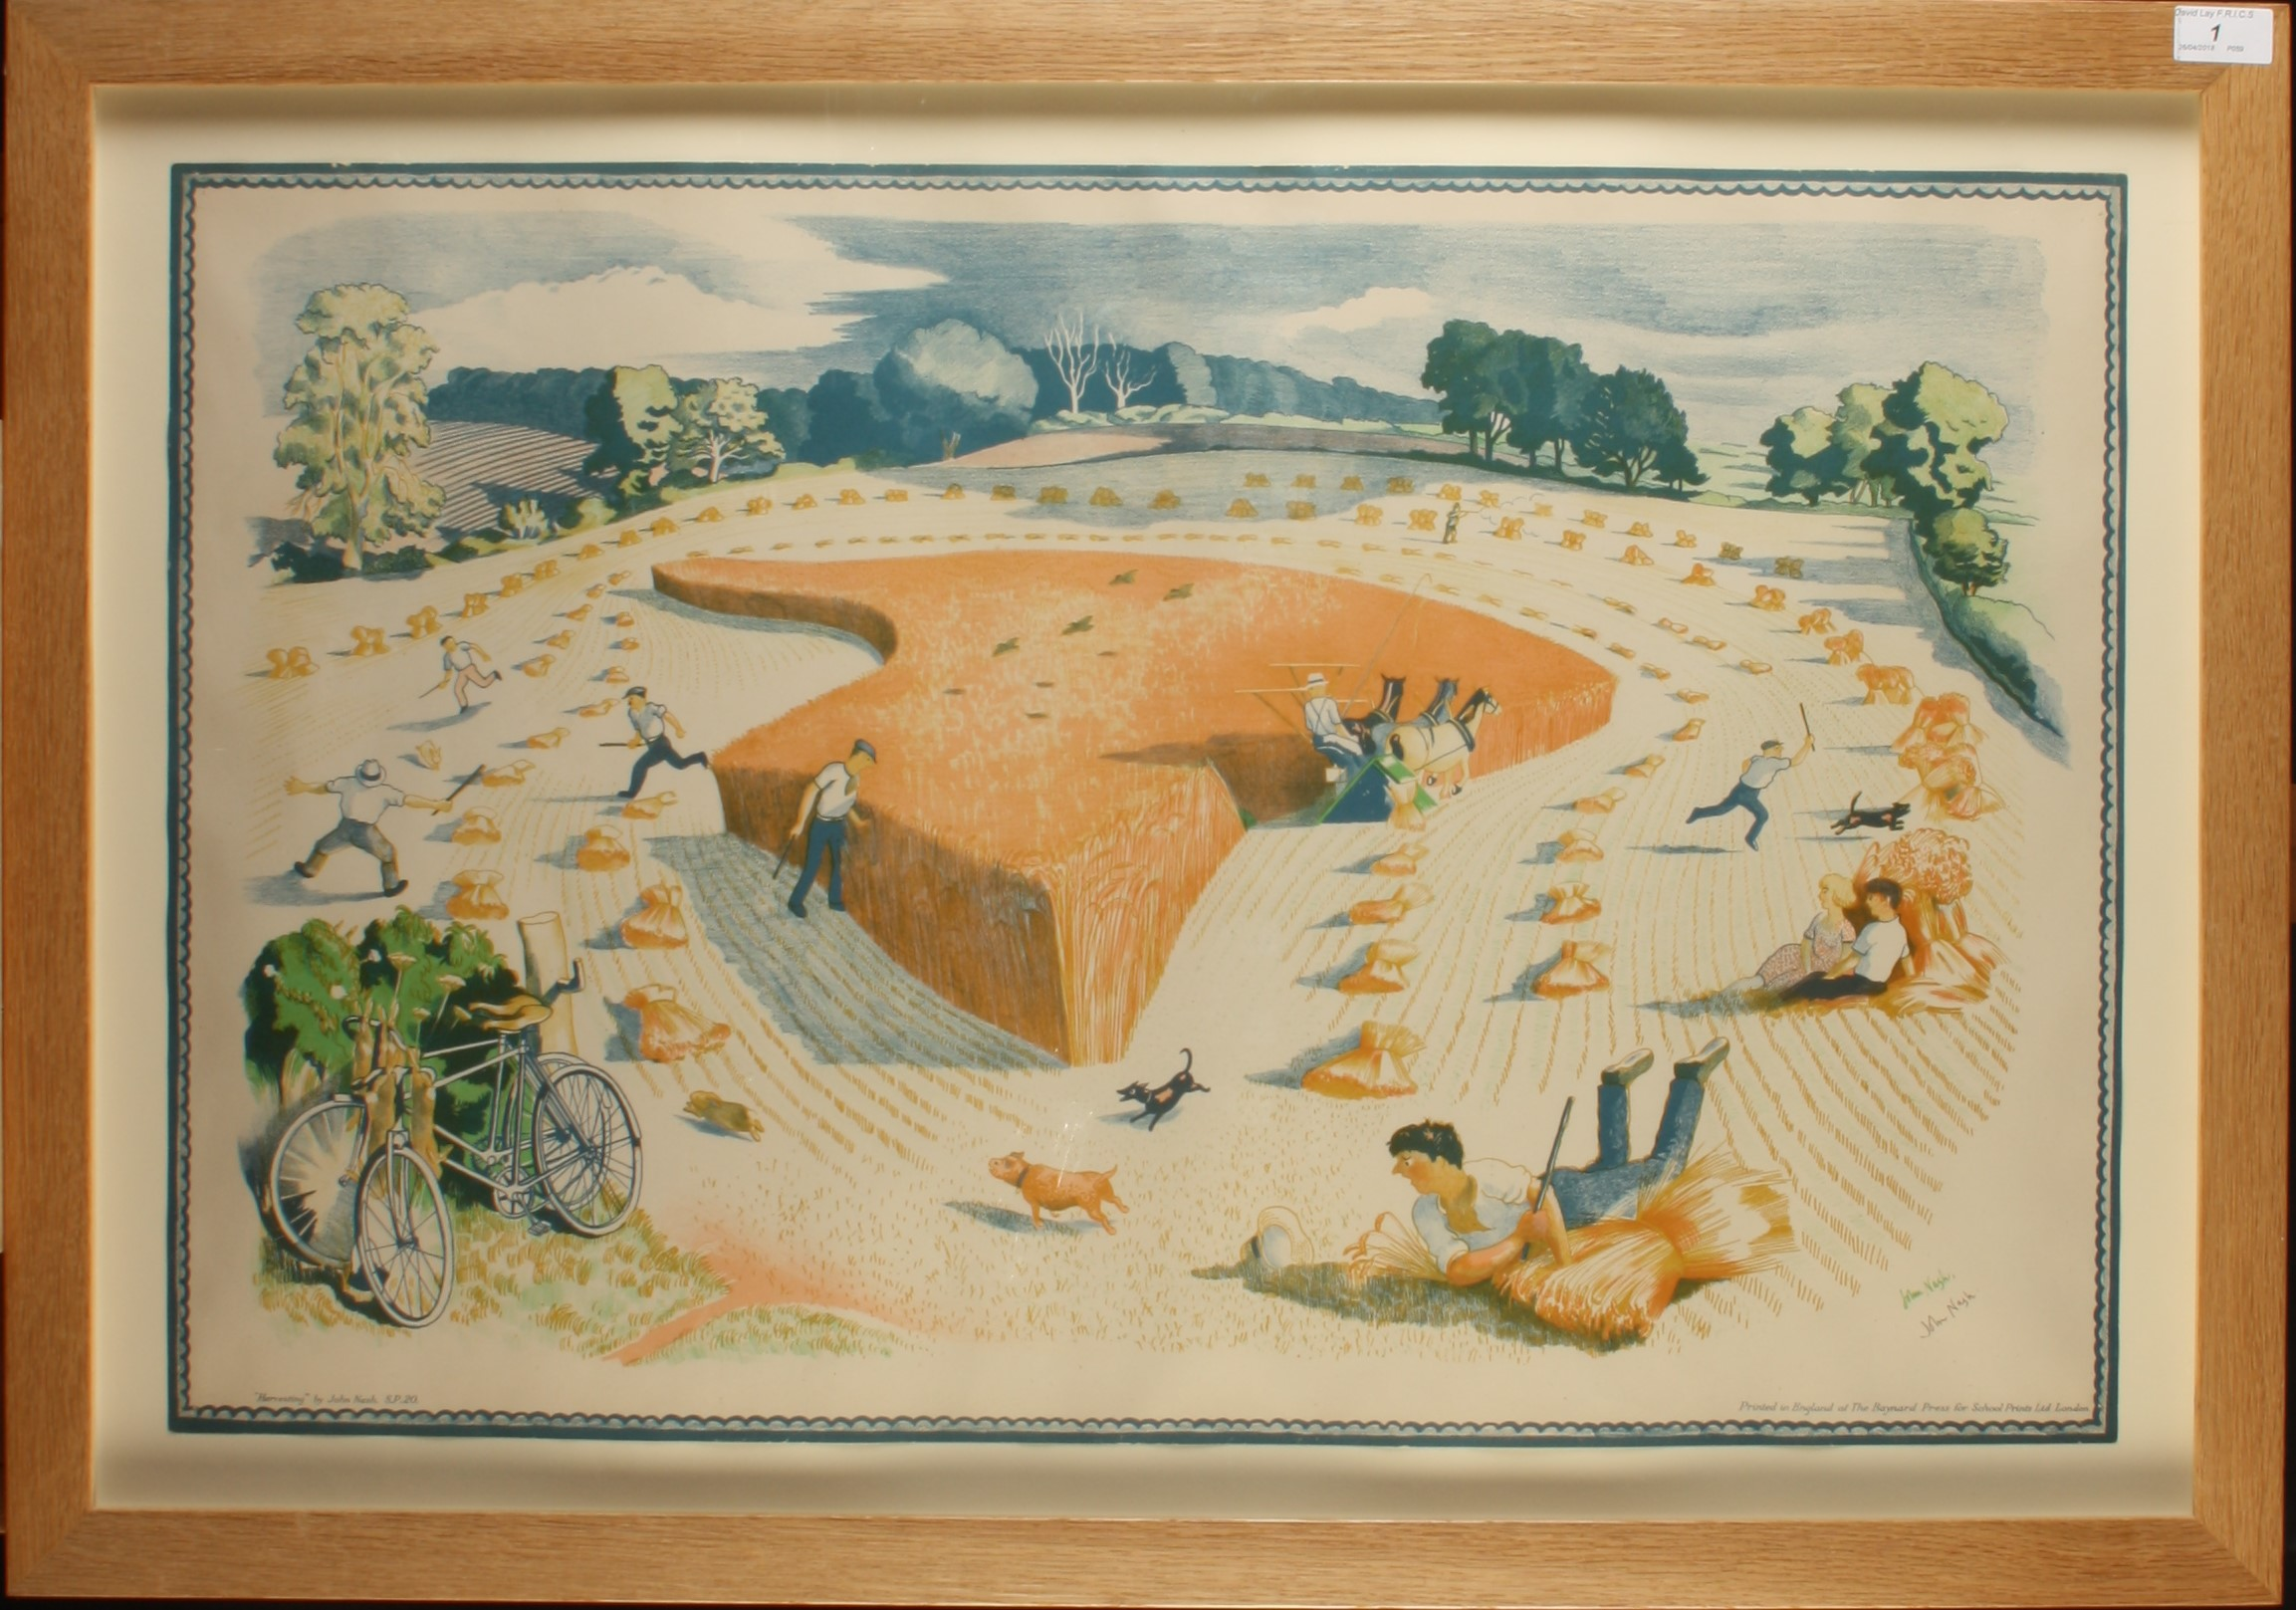 Lot 1 - John NASH Harvesting Lithograph Signed 49 x 75 cm Condition report: Colour of online